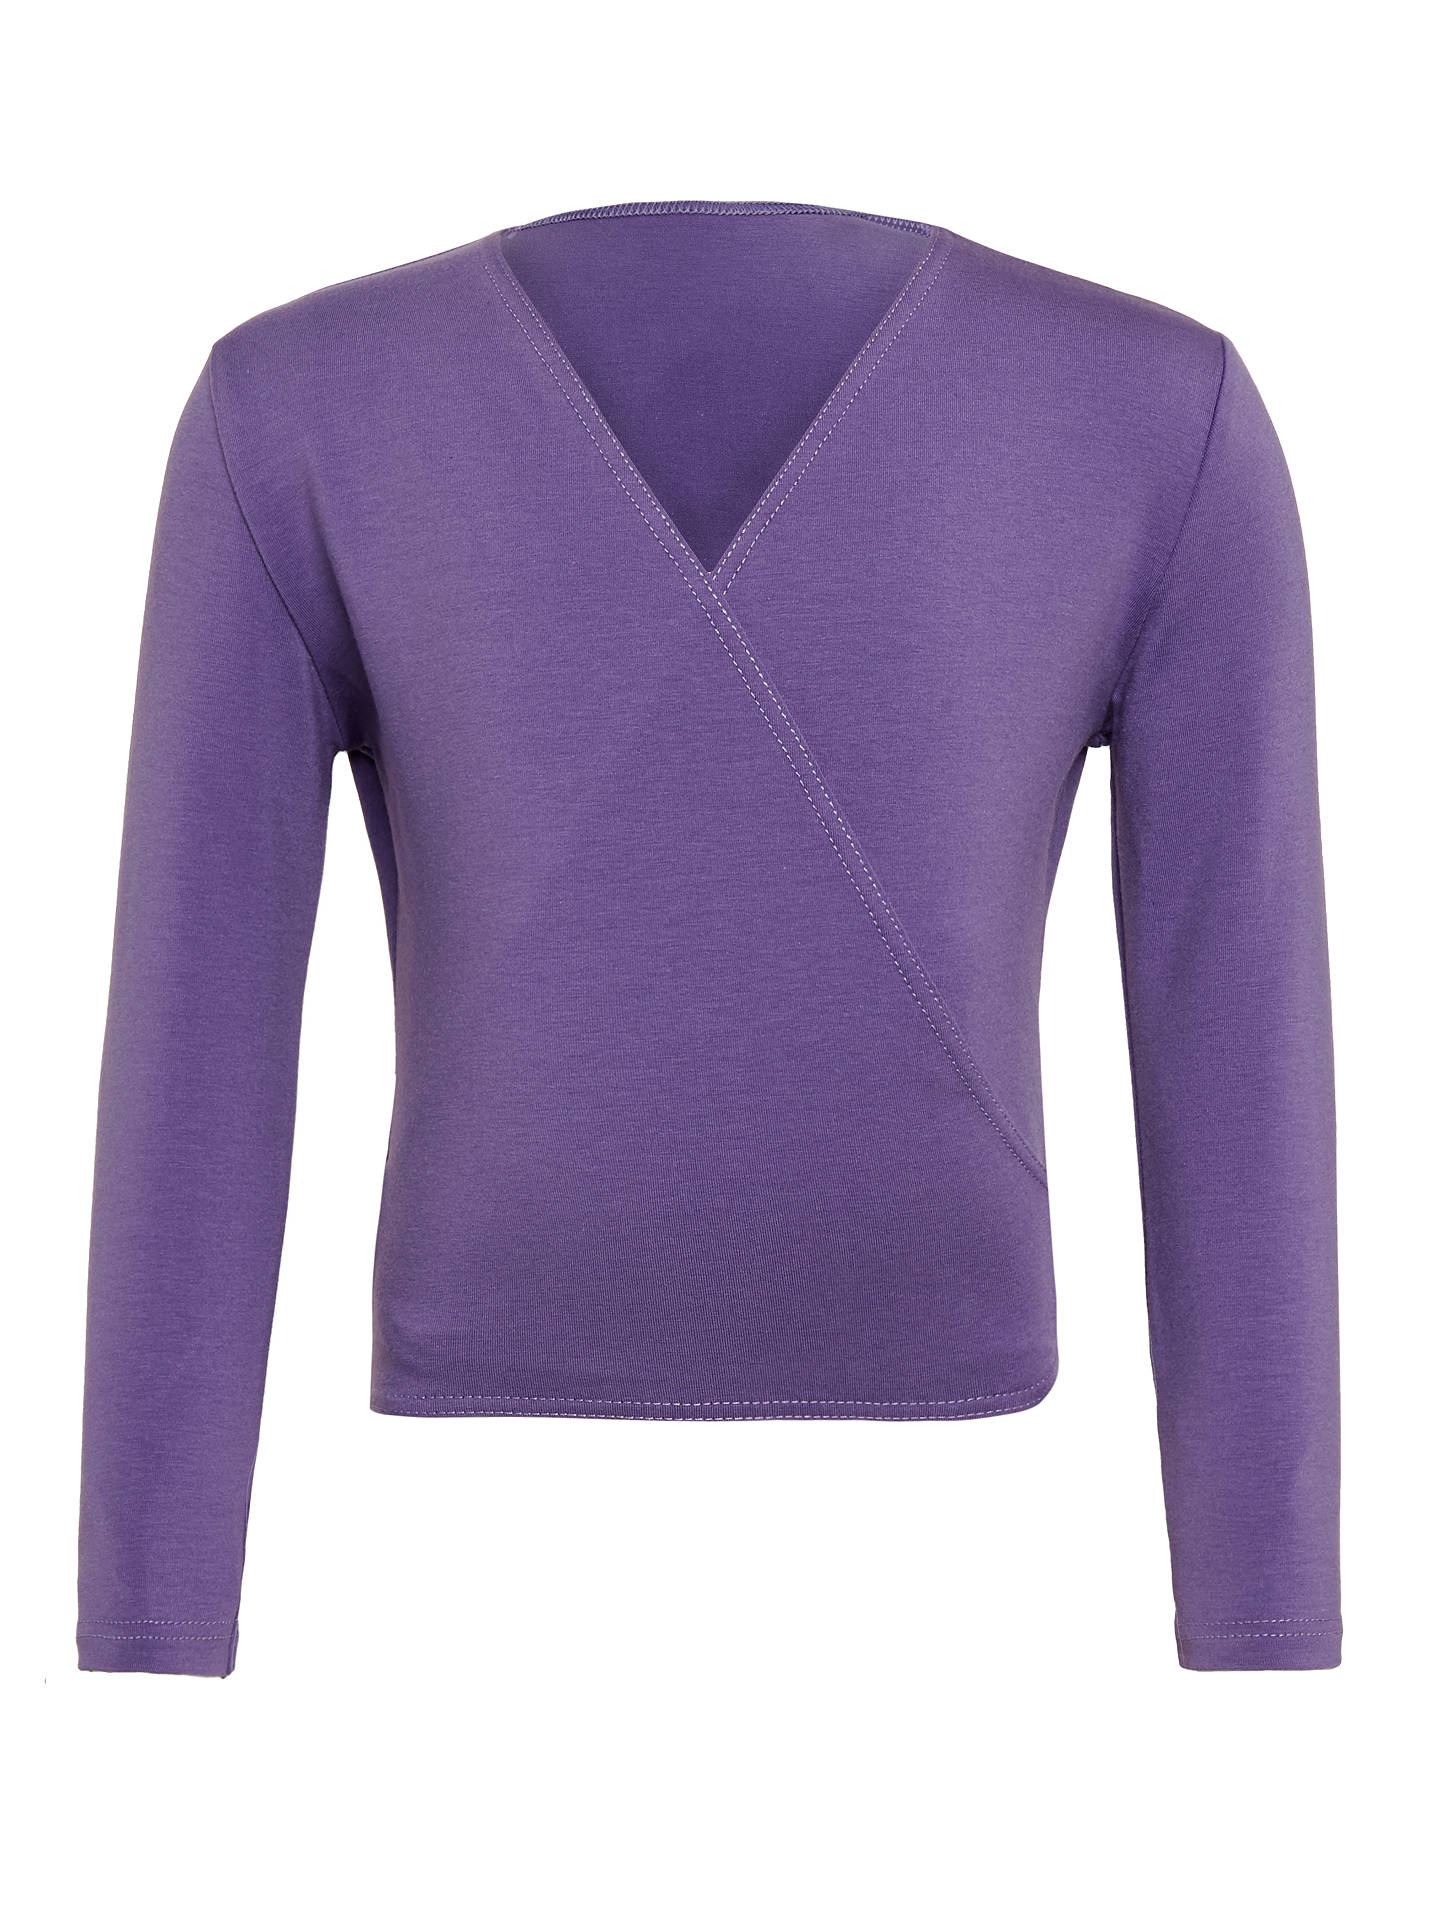 Girls PURPLE Cotton Wrap Dance Cardigan by Freeds of London Code:XOVER - Shopdance.co.uk